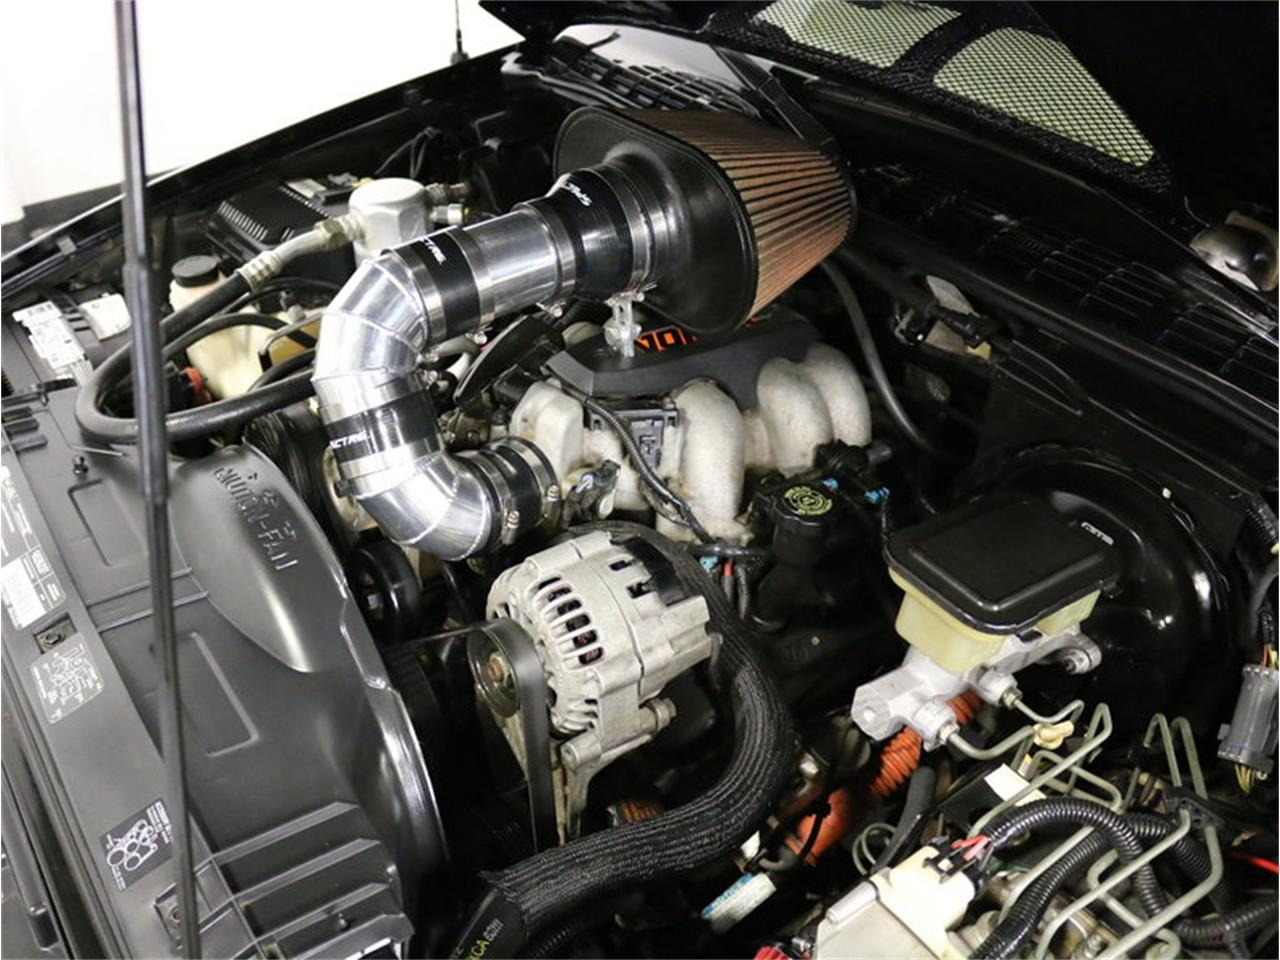 Large Picture of '95 Chevrolet S-10 SS Pro Street located in Ft Worth Texas - $17,995.00 Offered by Streetside Classics - Dallas / Fort Worth - MOBZ